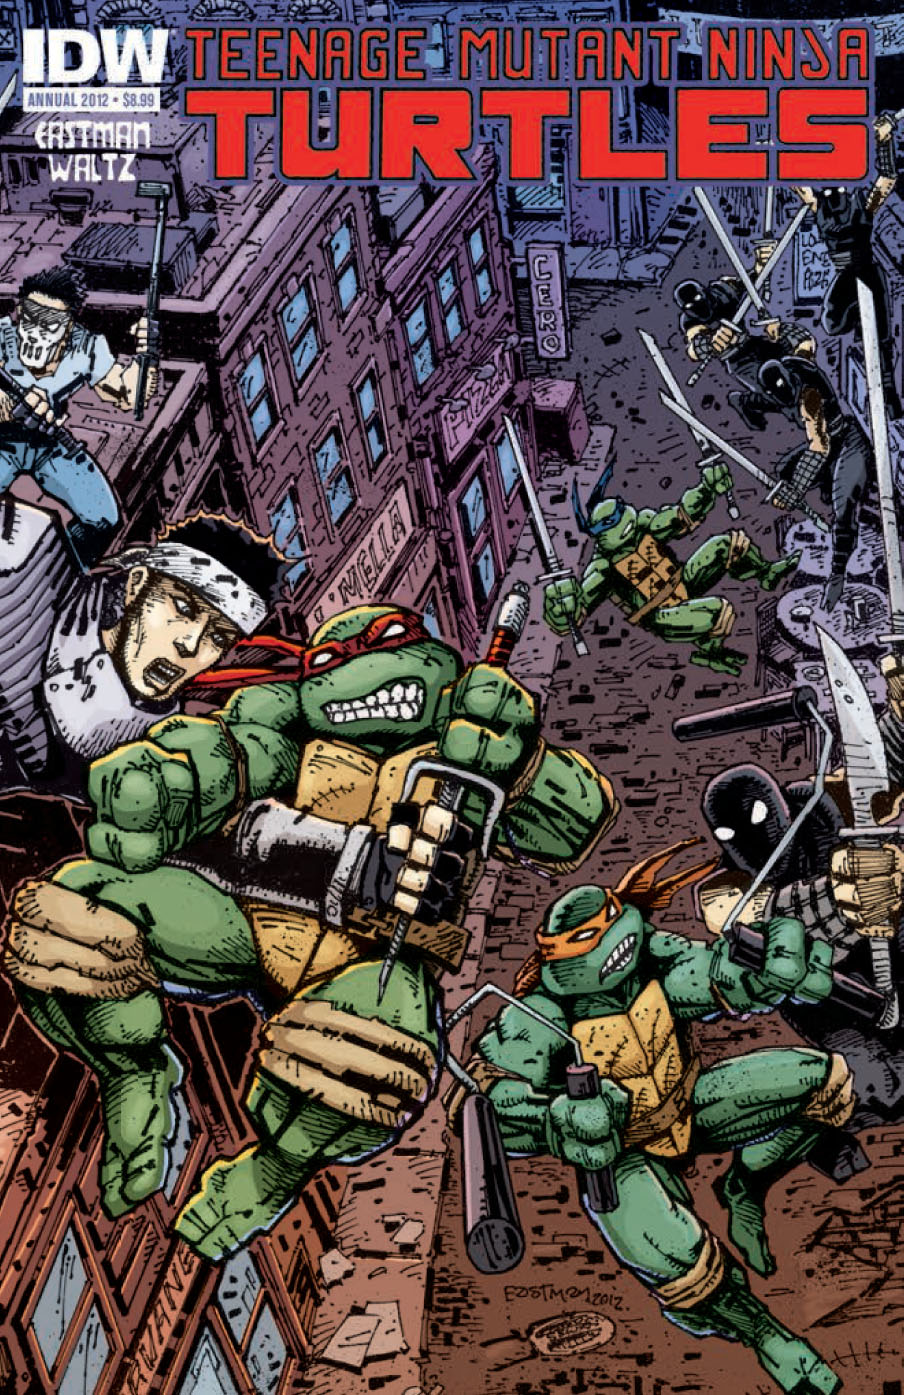 TMNT Annual 1 C Teenage Mutant Ninja Turtles Annual 2012 Review